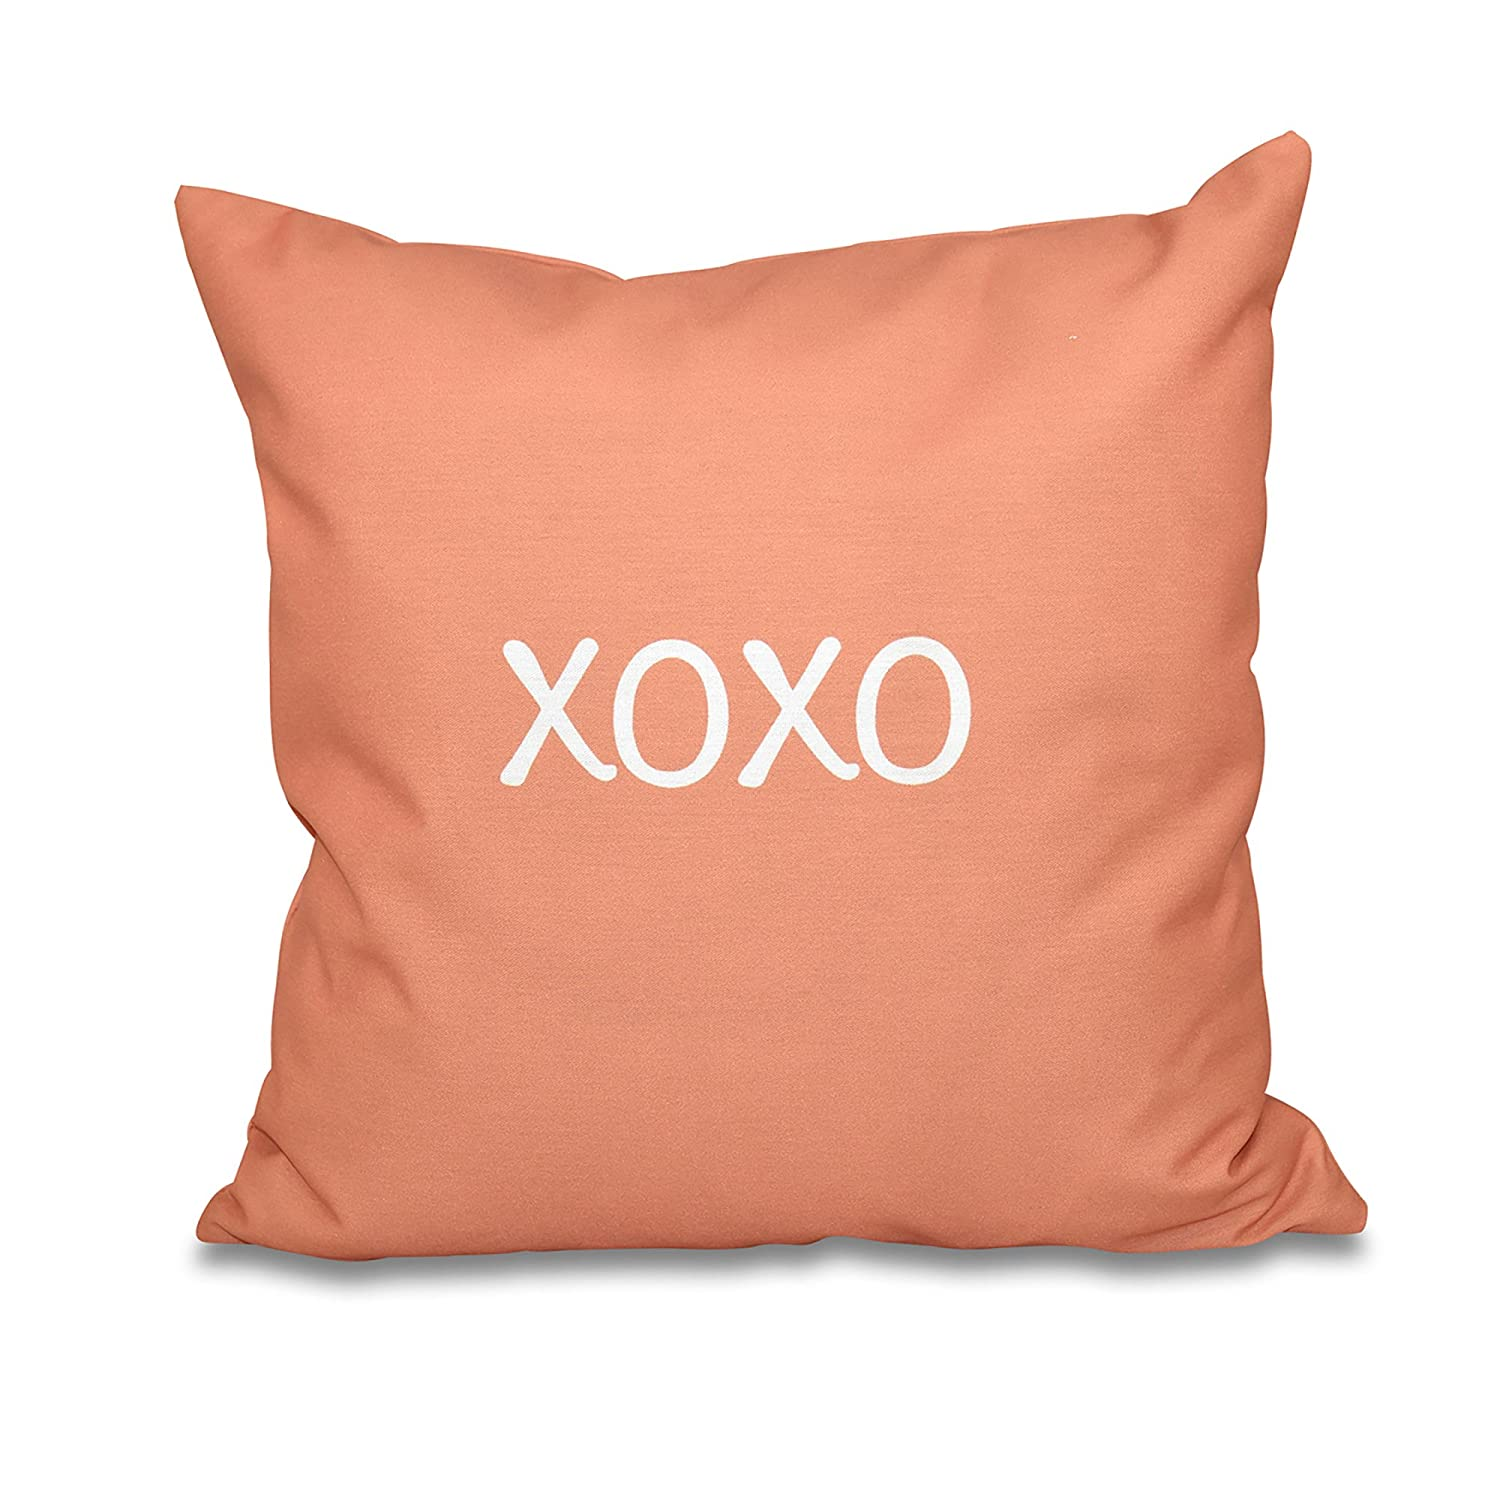 E by design PWN511OR10-18 18 x 18-inch Coral 18x18 Orange//Red Word Print Pillow XOXO